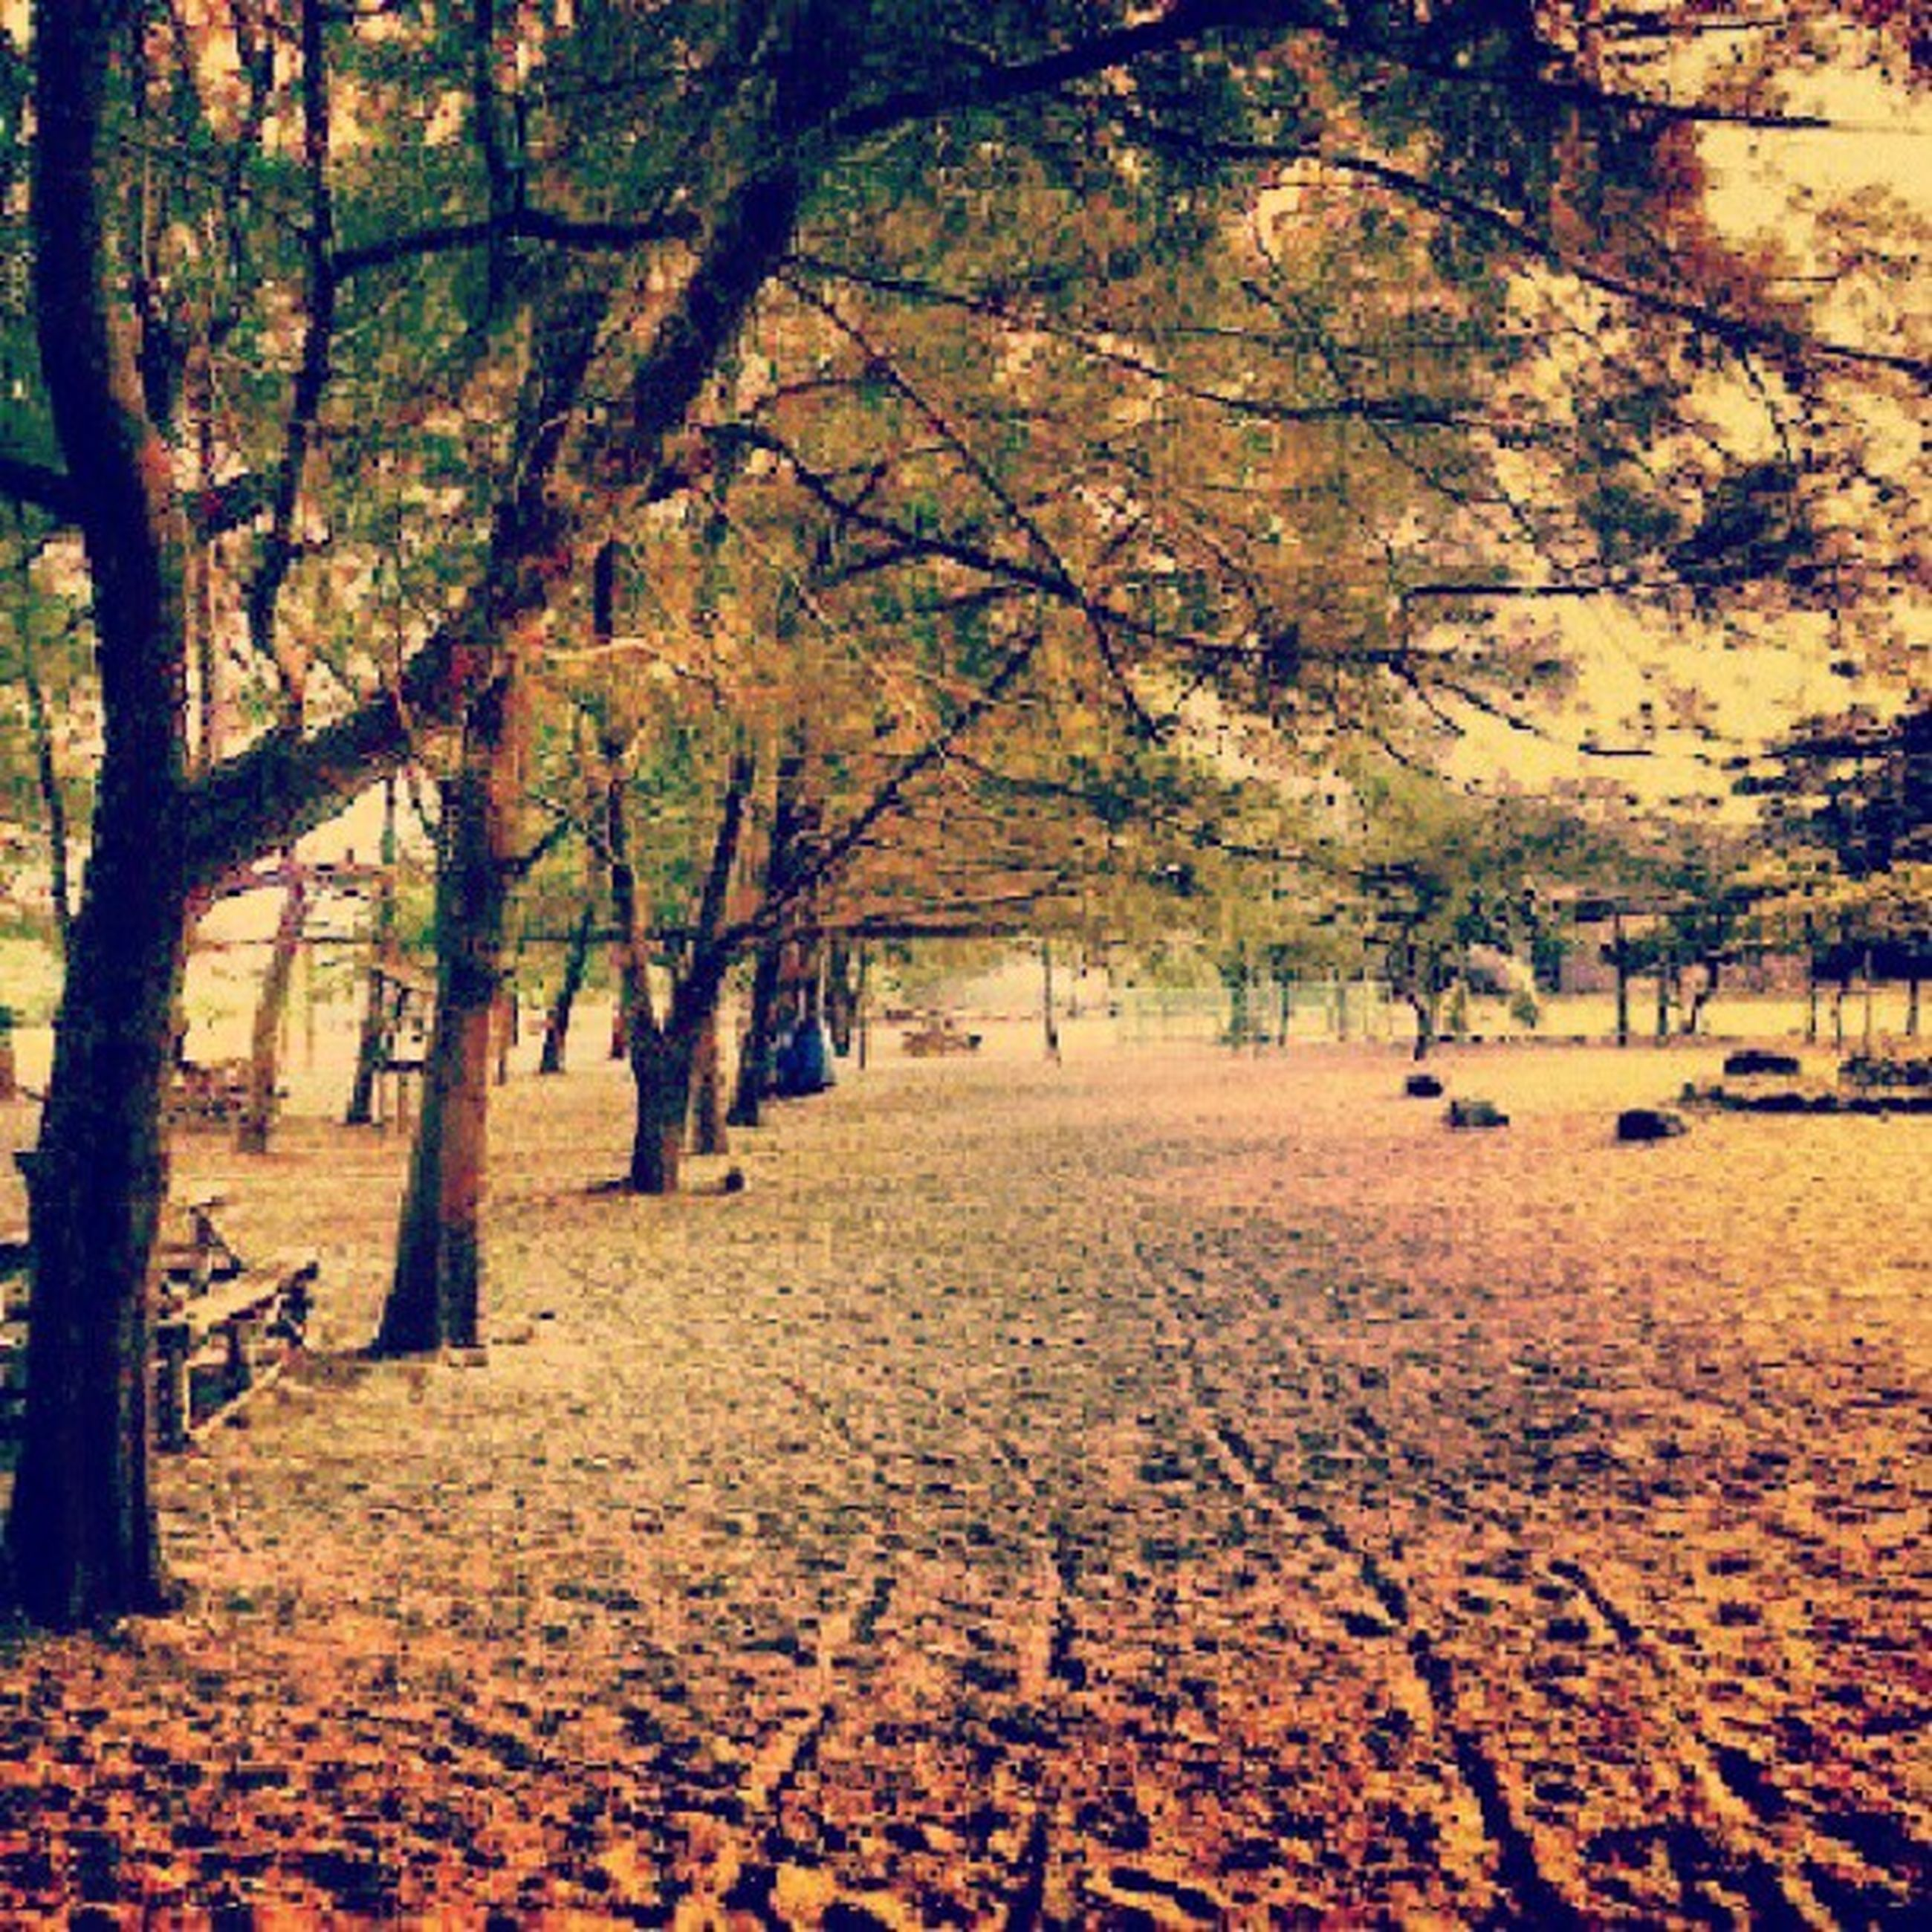 tree, autumn, tranquility, change, tranquil scene, season, nature, beauty in nature, branch, tree trunk, scenics, growth, leaf, park - man made space, orange color, idyllic, outdoors, footpath, landscape, treelined